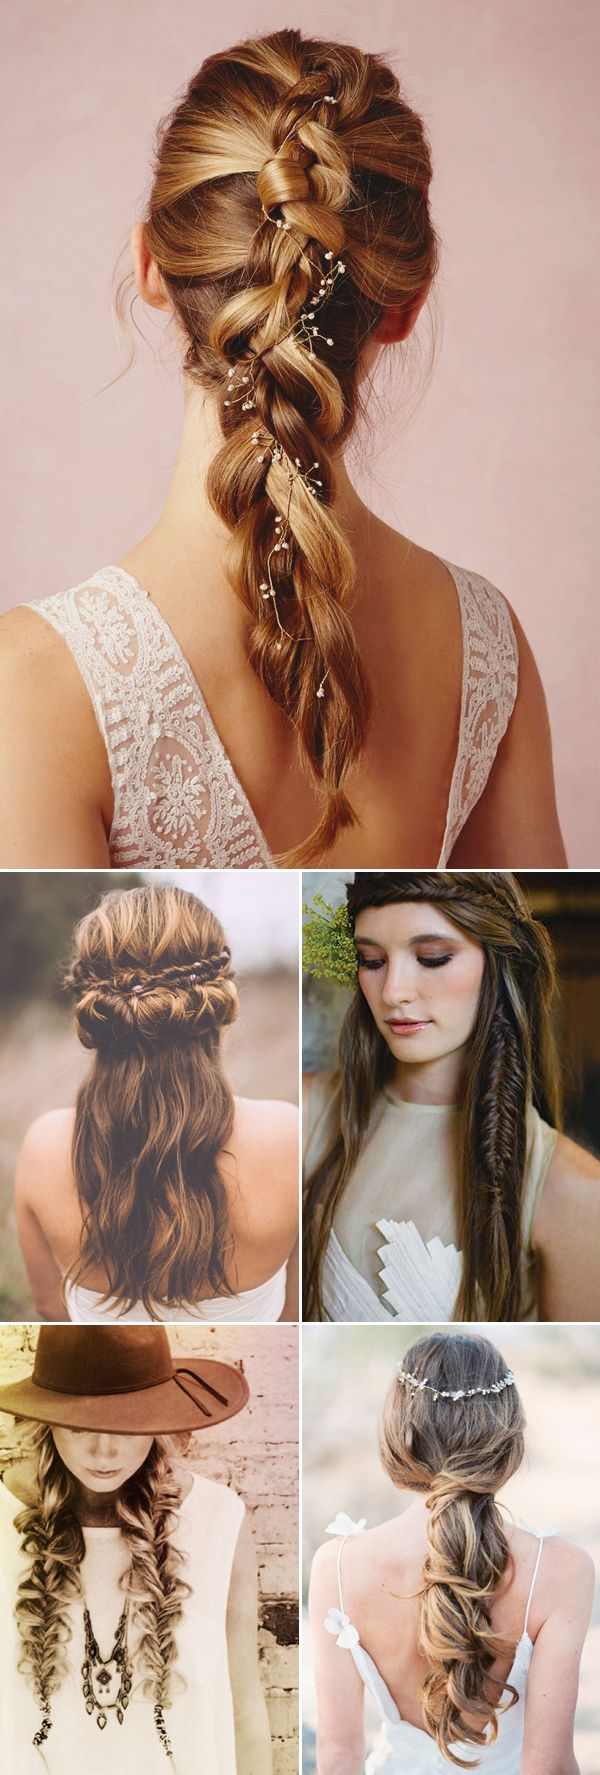 Oh So Romantic! 20 Natural Bohemian Bridal Hairstyles - Stylish Boho